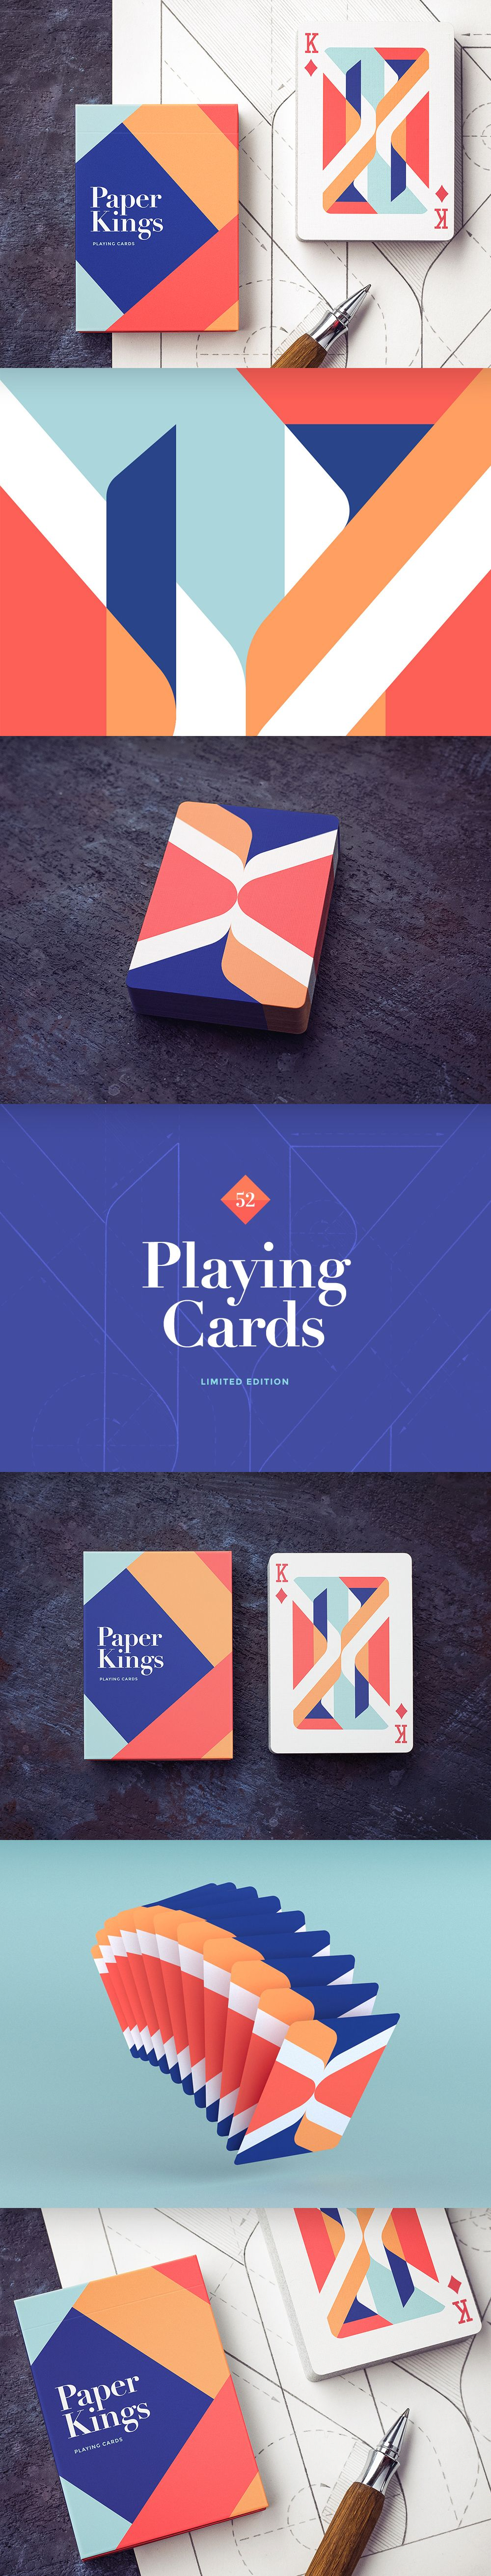 Paper Kings playing cards | Playing cards, Cards and Plays